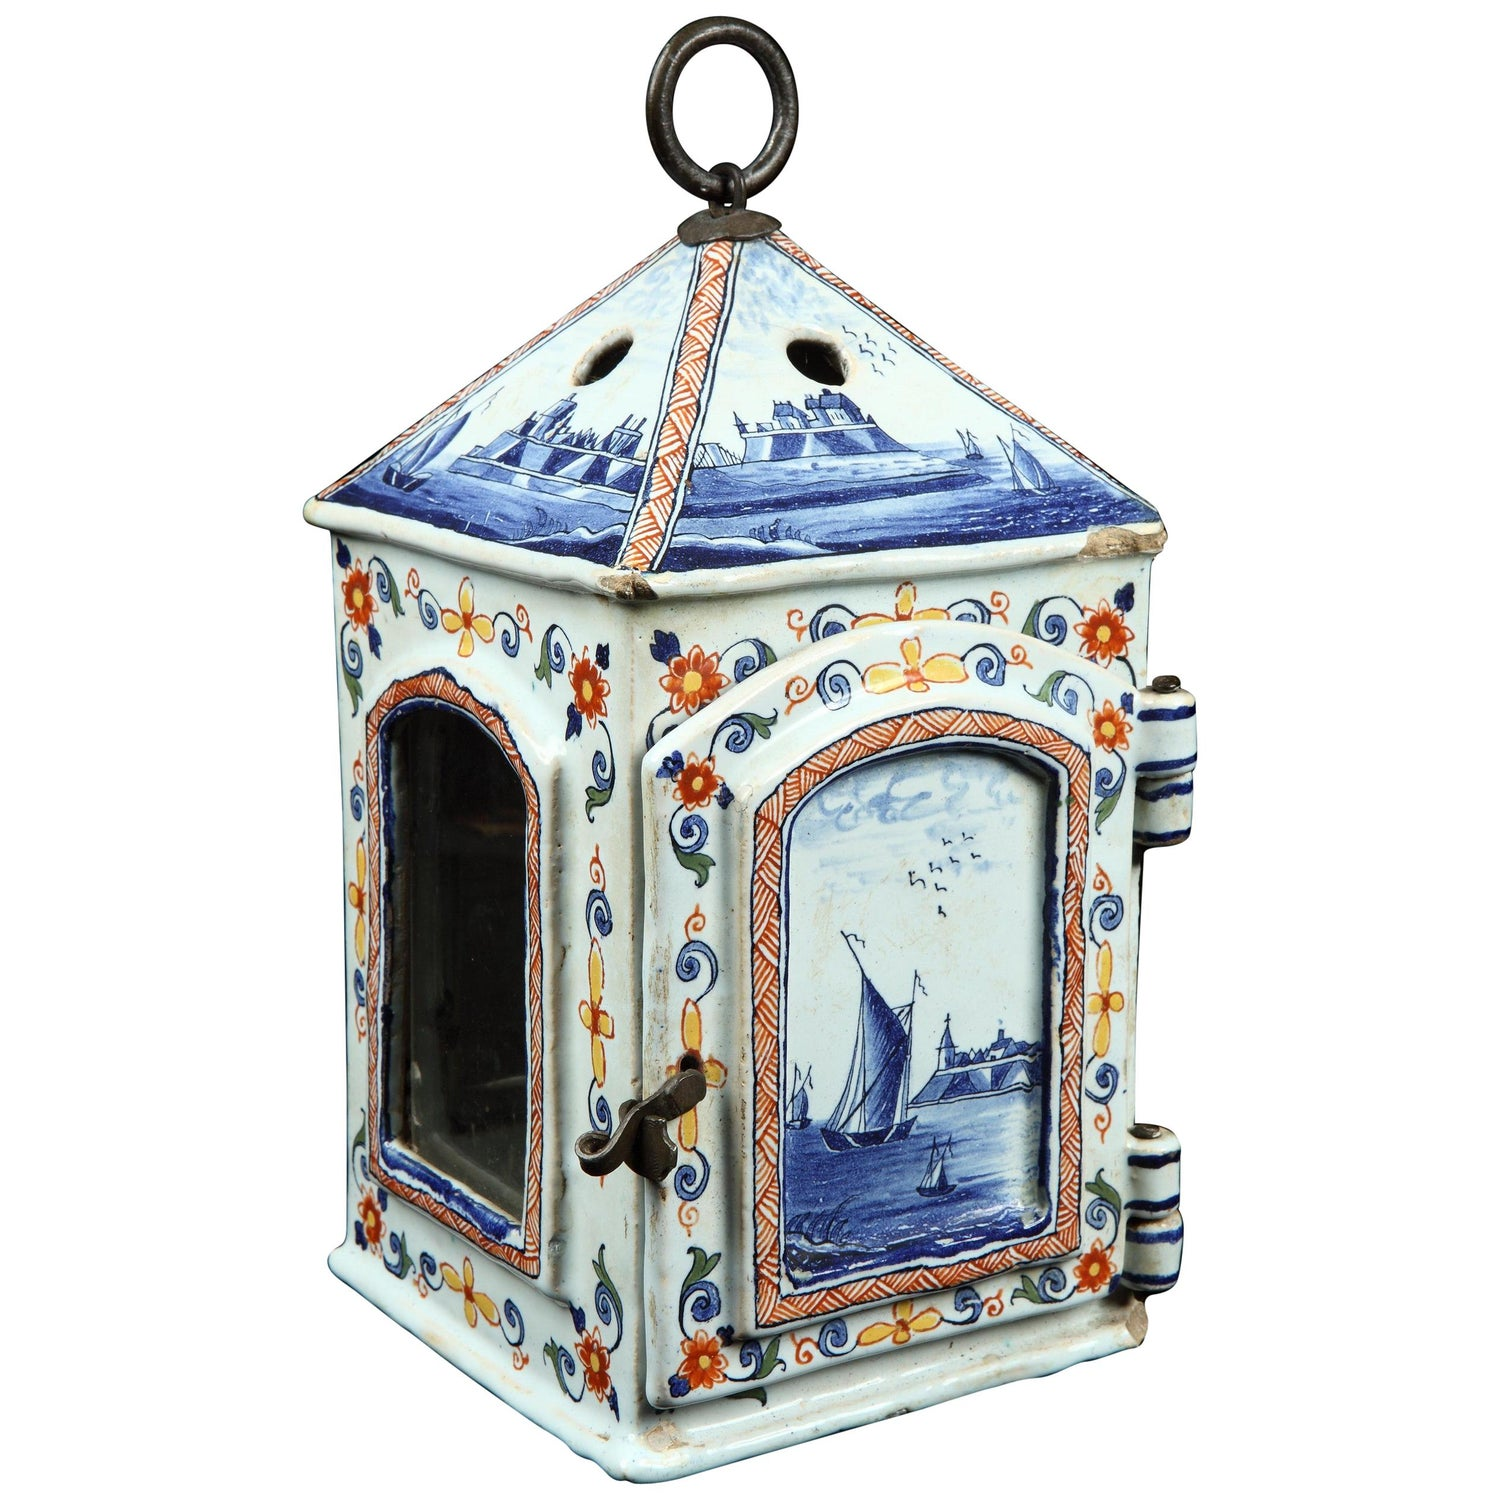 Lantern, Delftware, mid-18th Century, Dutch, Polychrome, Tryhorn Collection